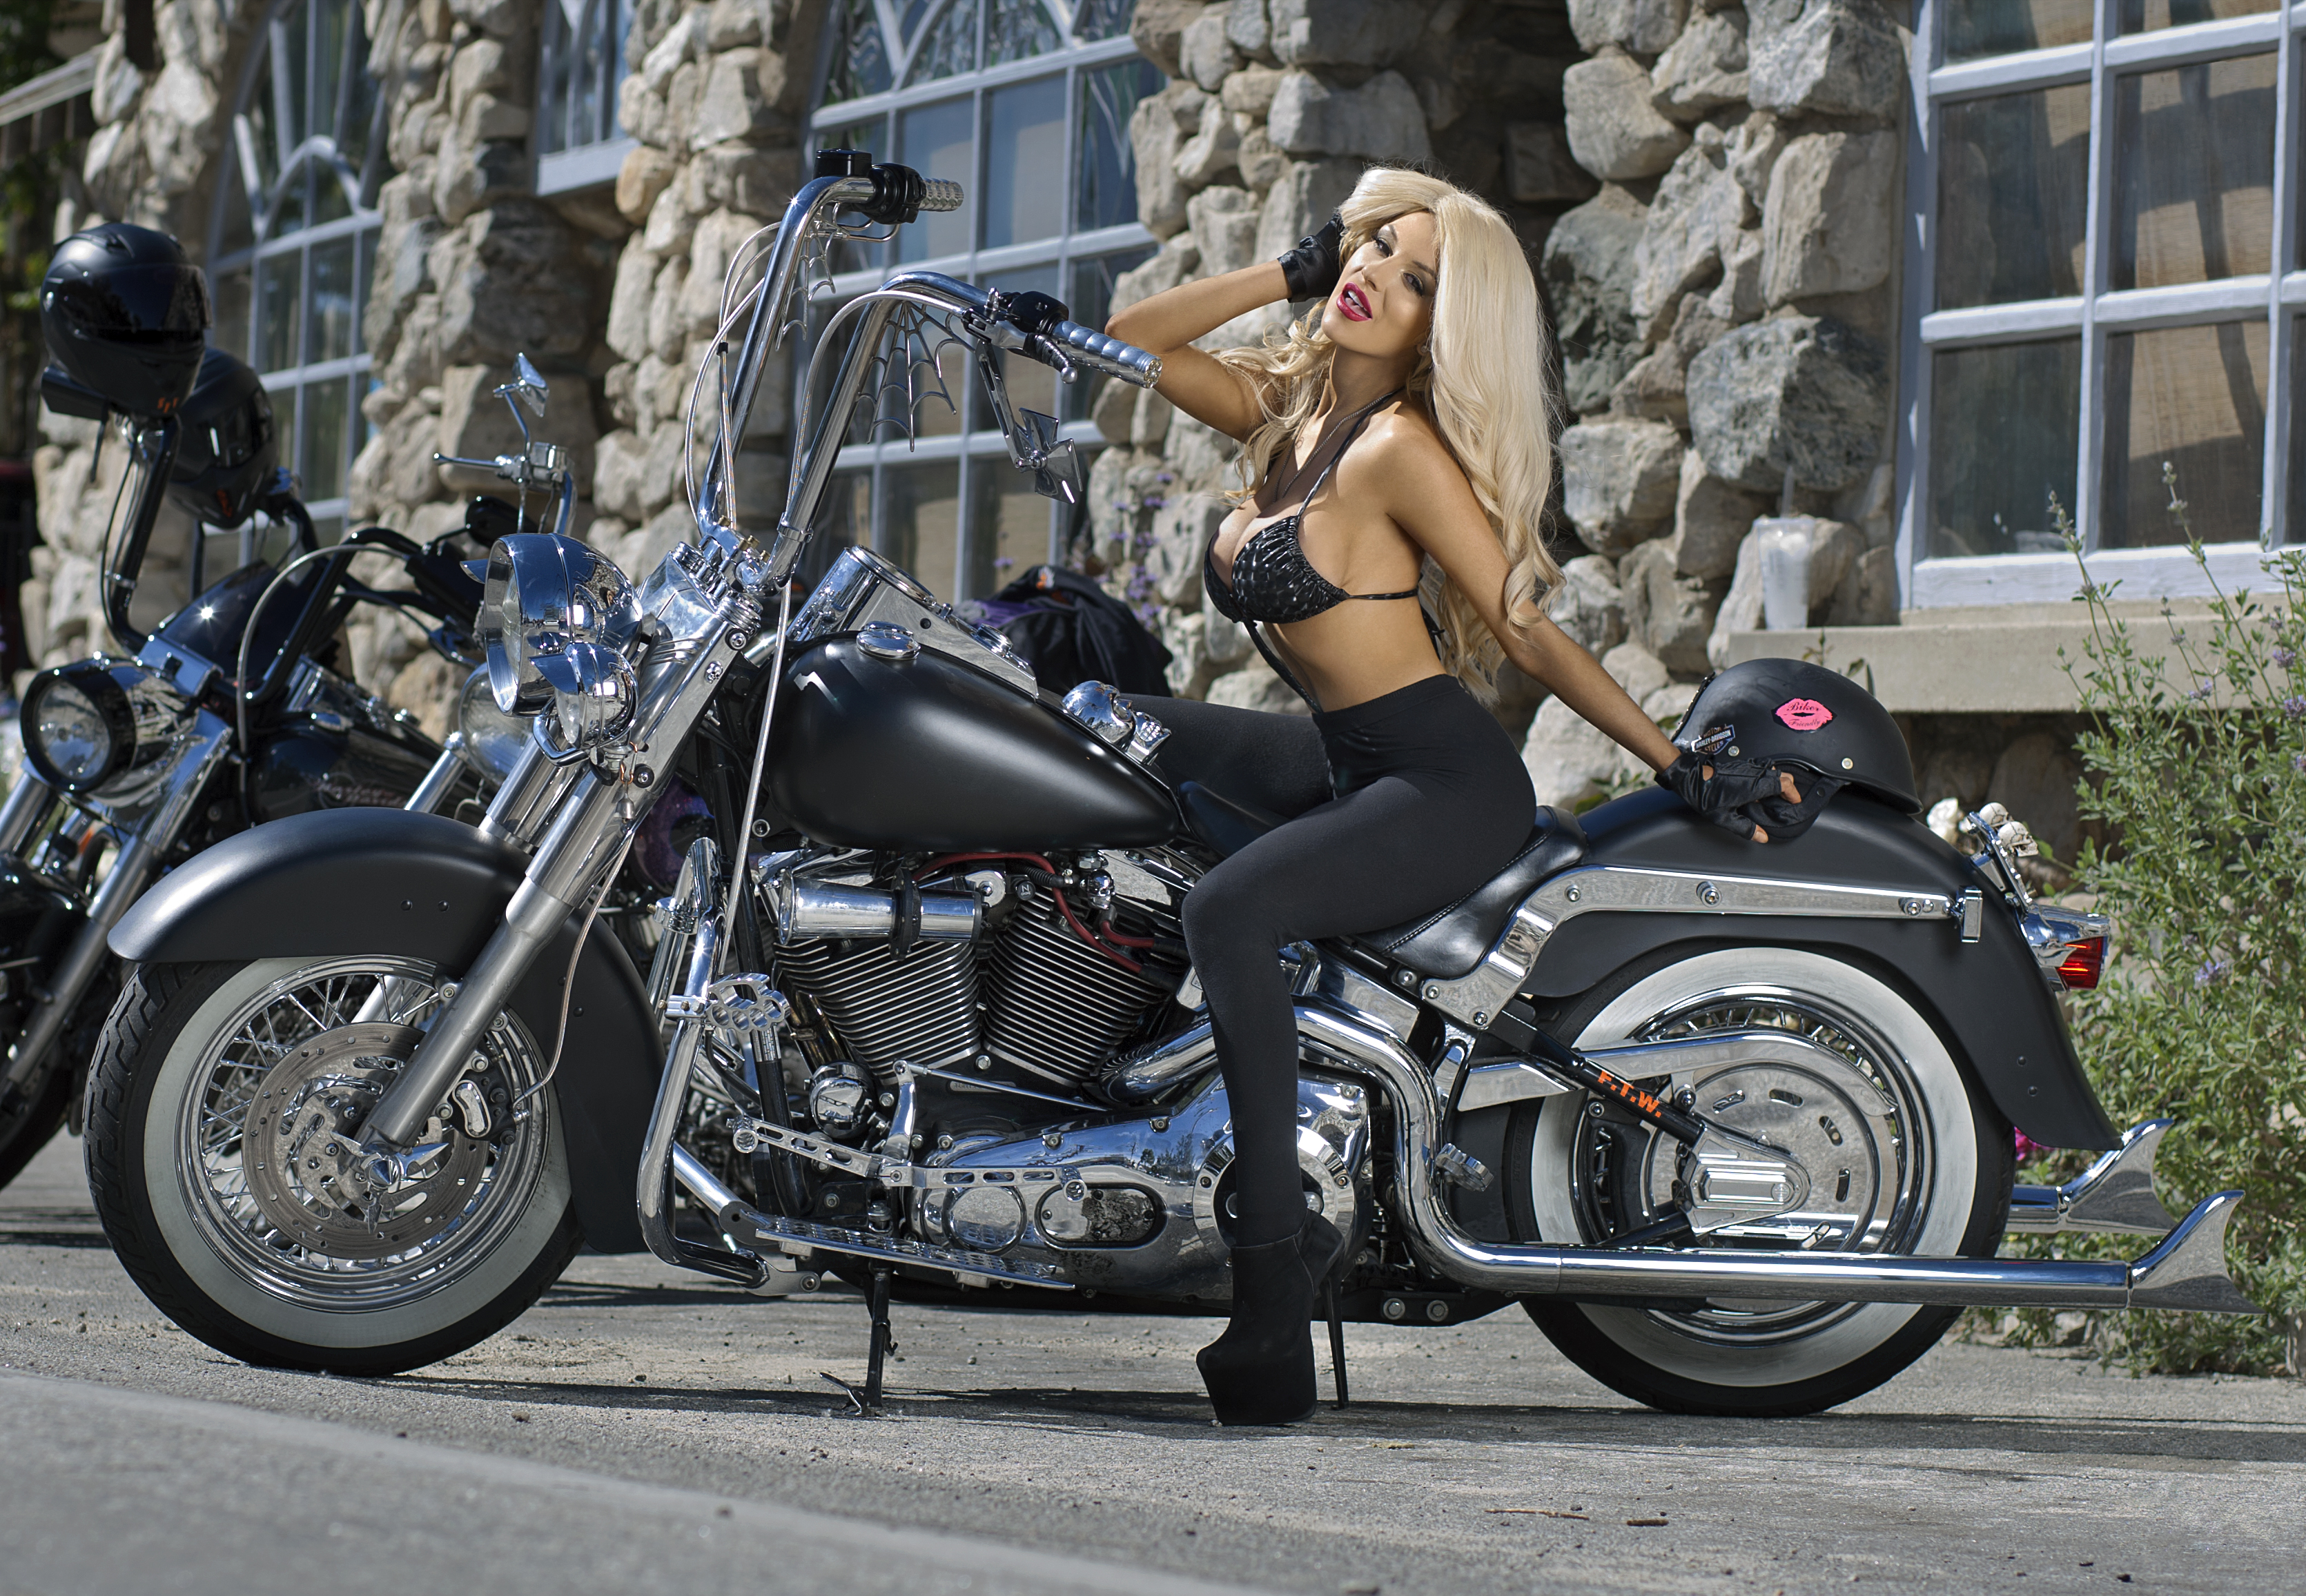 Courtney Stodden Is Stunning Hot Riding A Harley Davidson